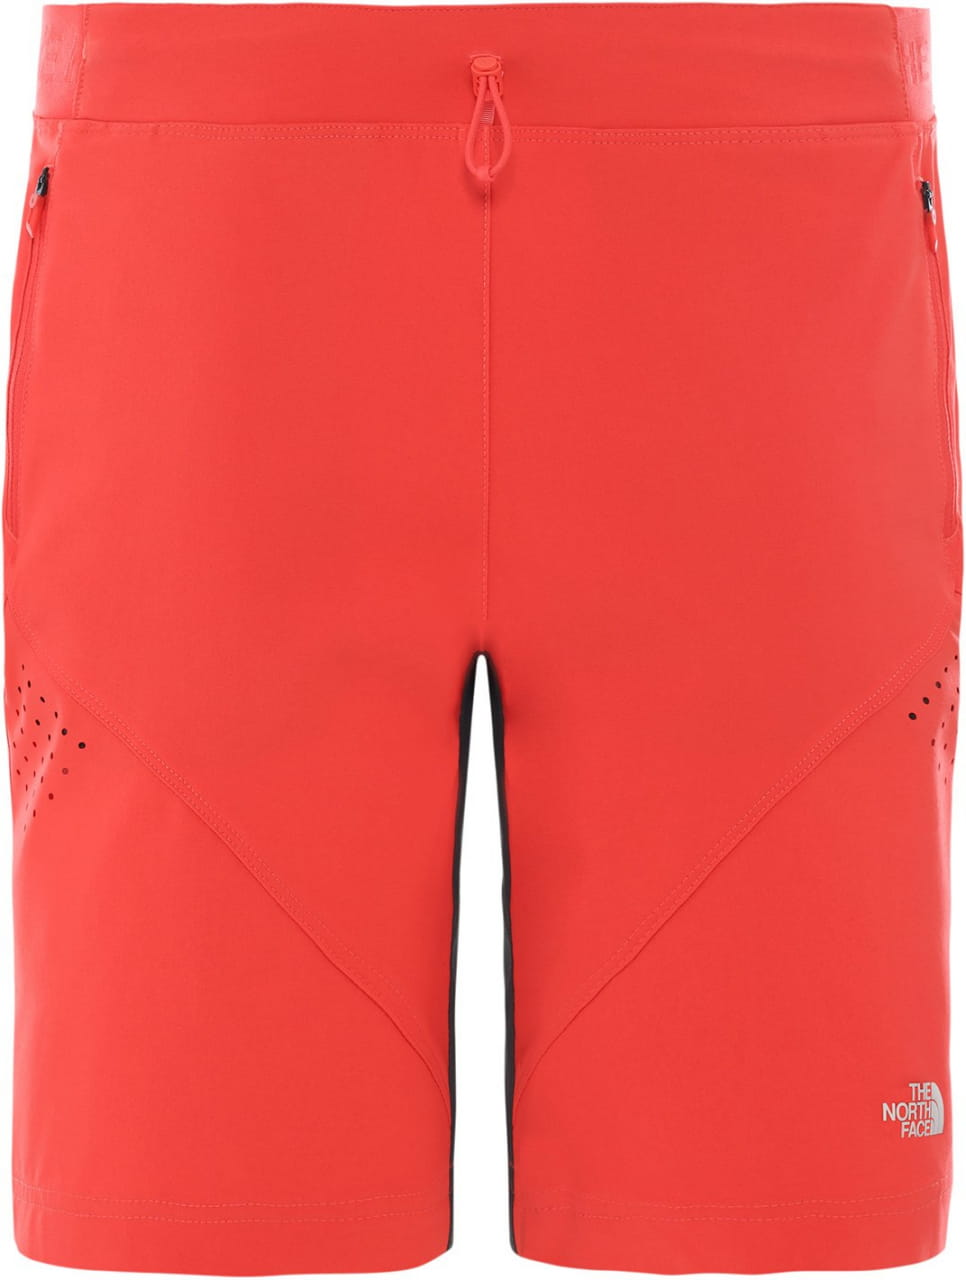 Shorts The North Face Women's Impendor Alpine Shorts